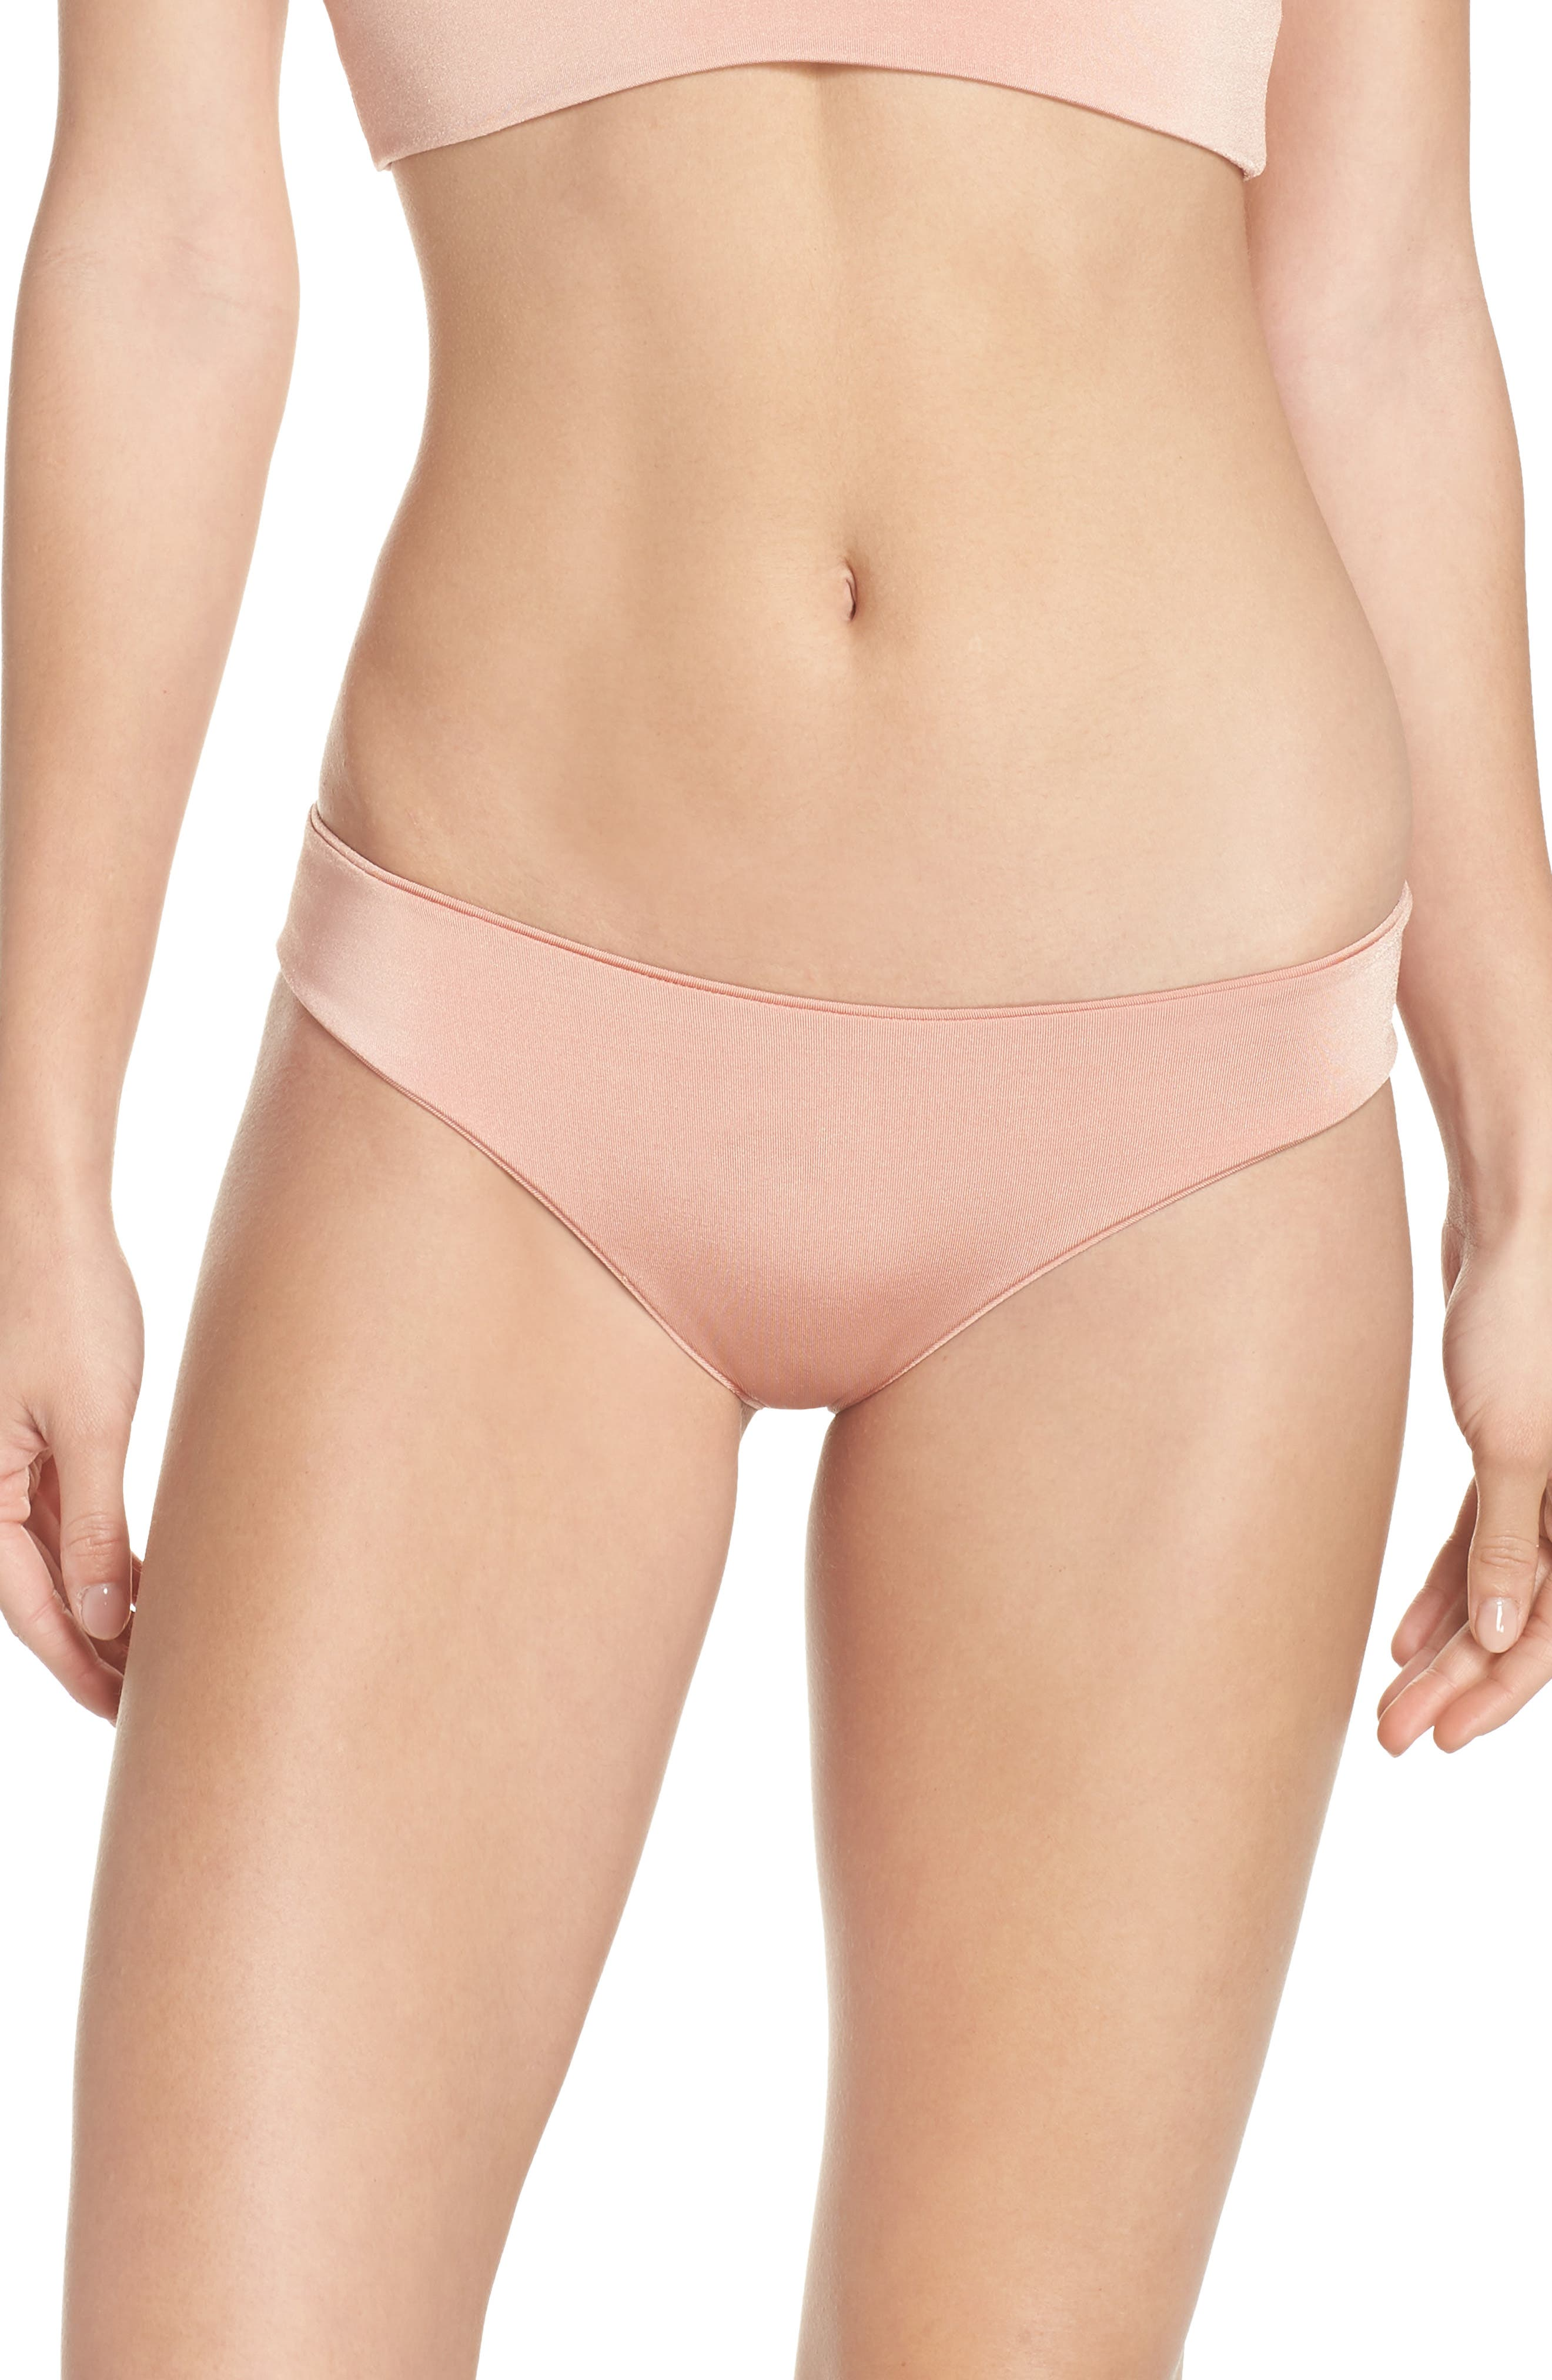 Charlie Bikini Bottoms,                             Main thumbnail 1, color,                             BLUSH & BASHFUL